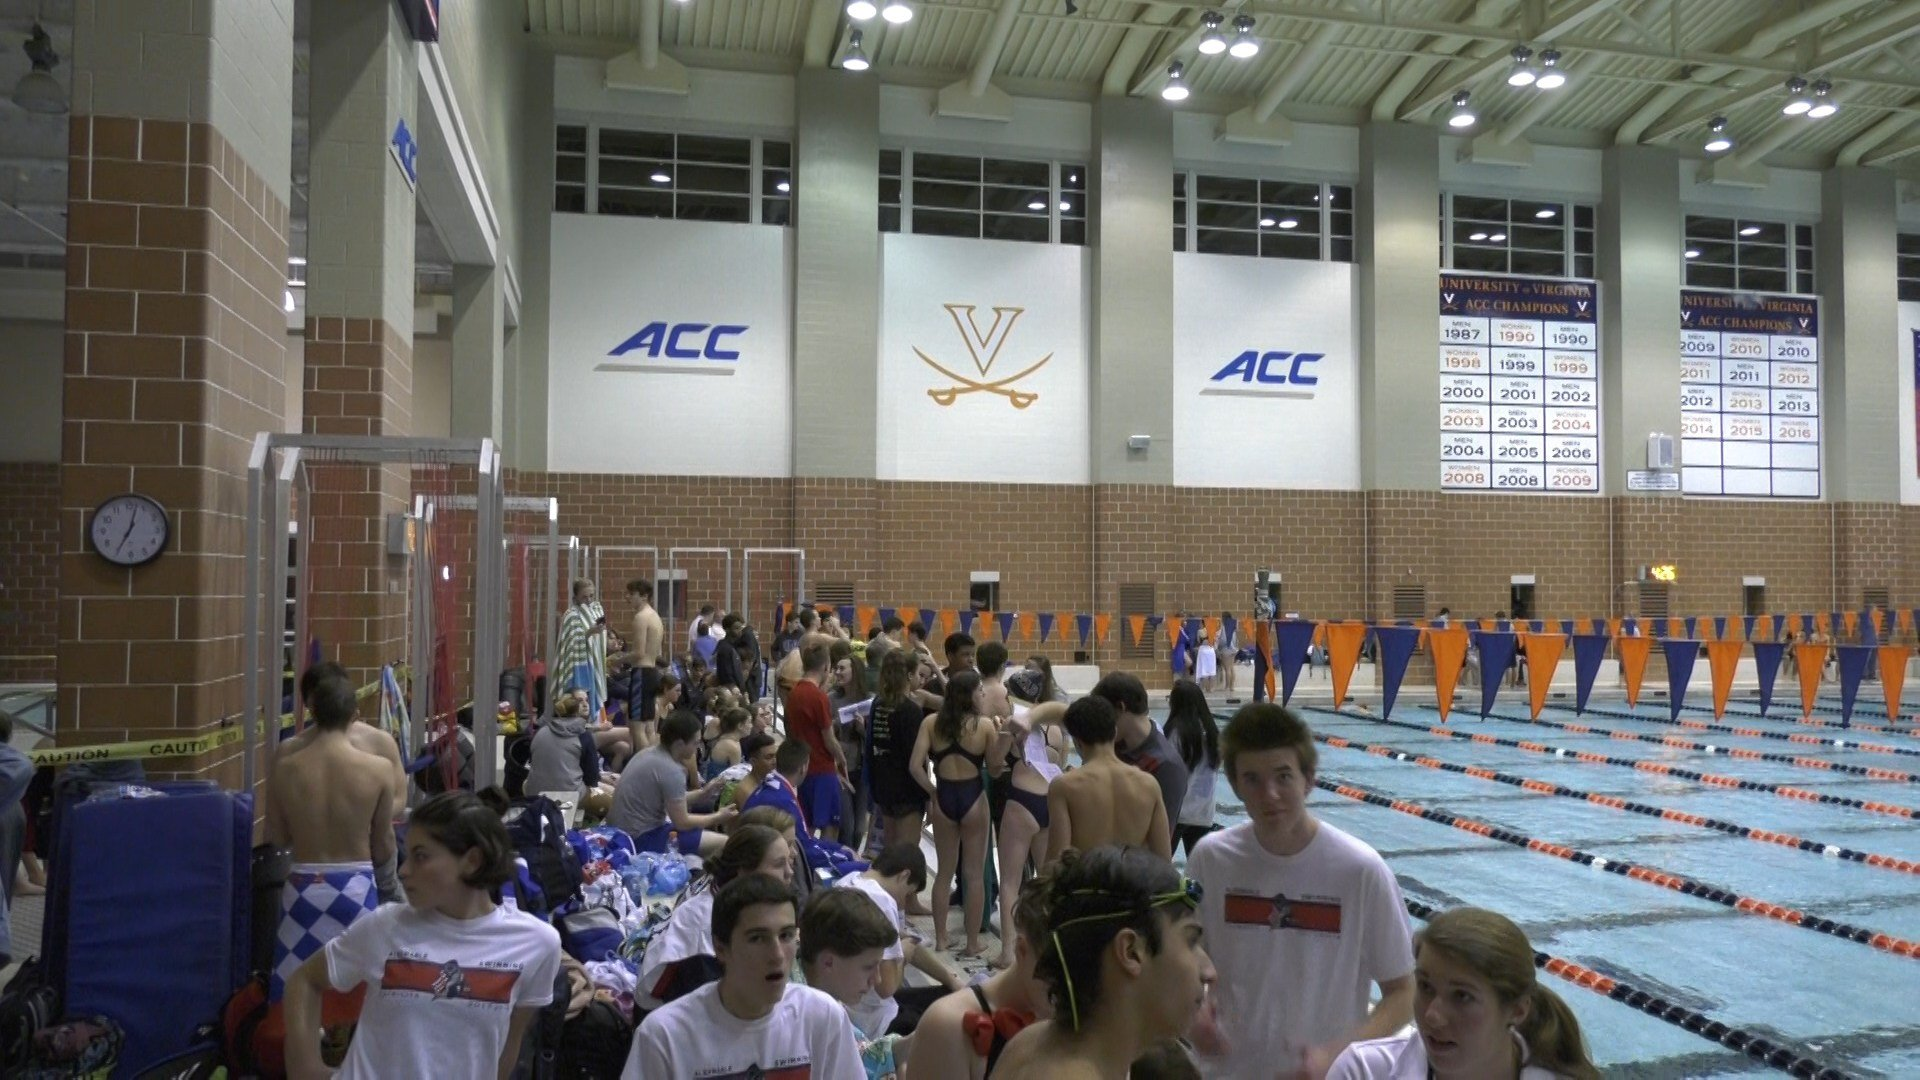 The Annual Ben Hair swim meet was held at the UVA Fitness and Aquatics Center